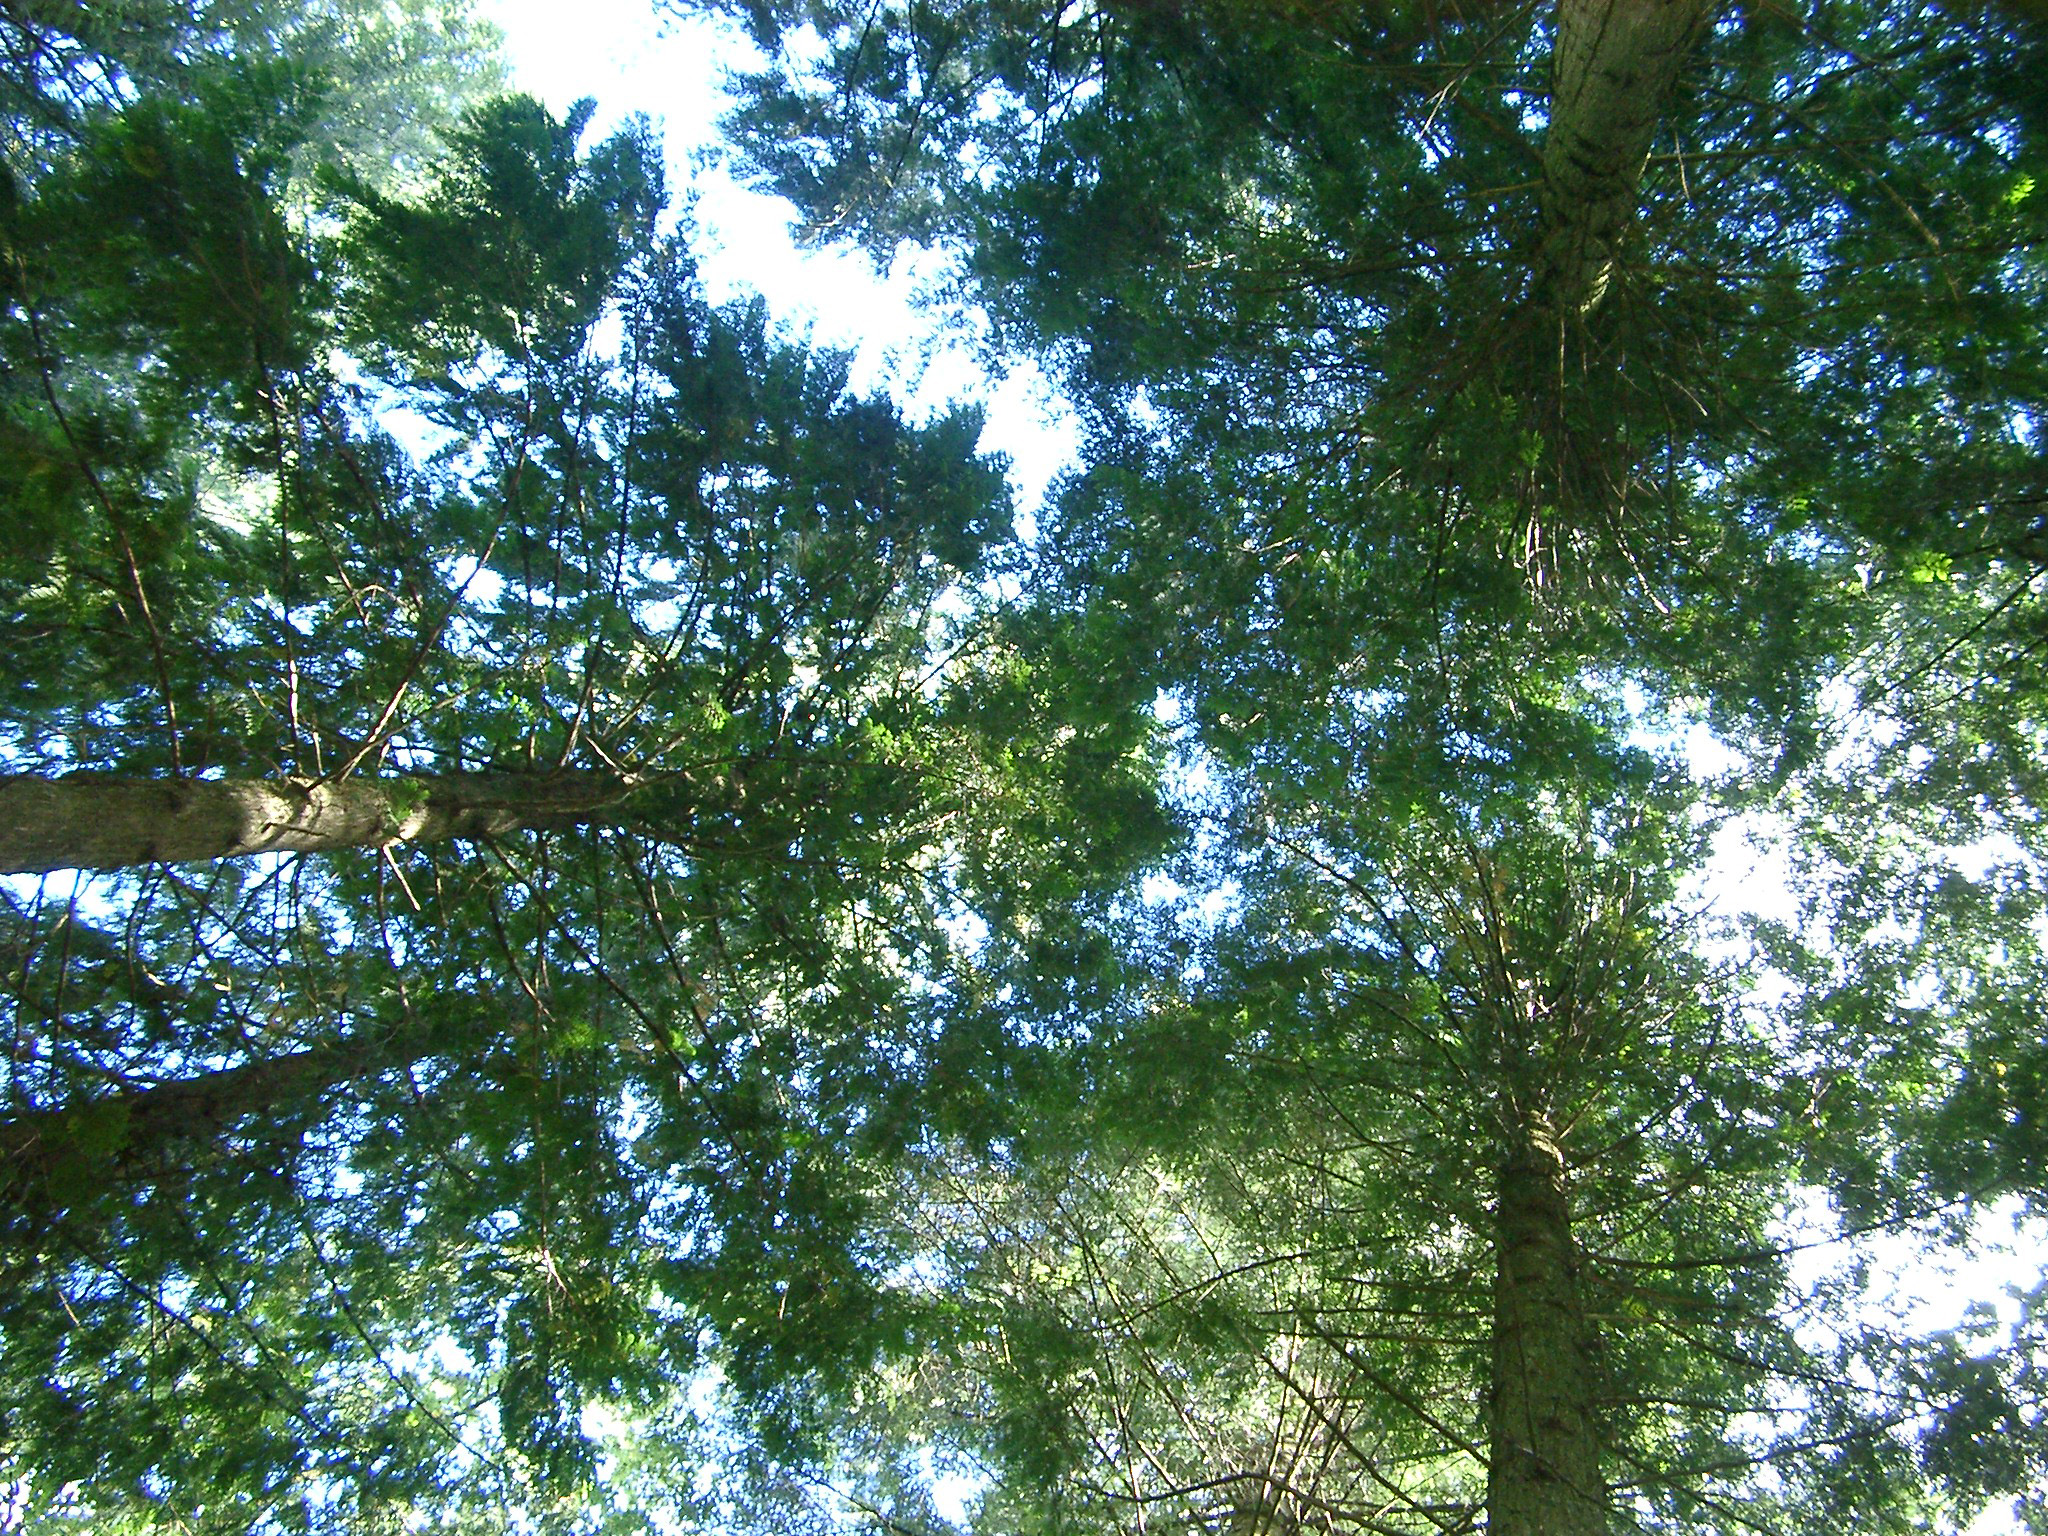 Nature background showing the canopy and branches of a group of leafy green tall trees in a woodland